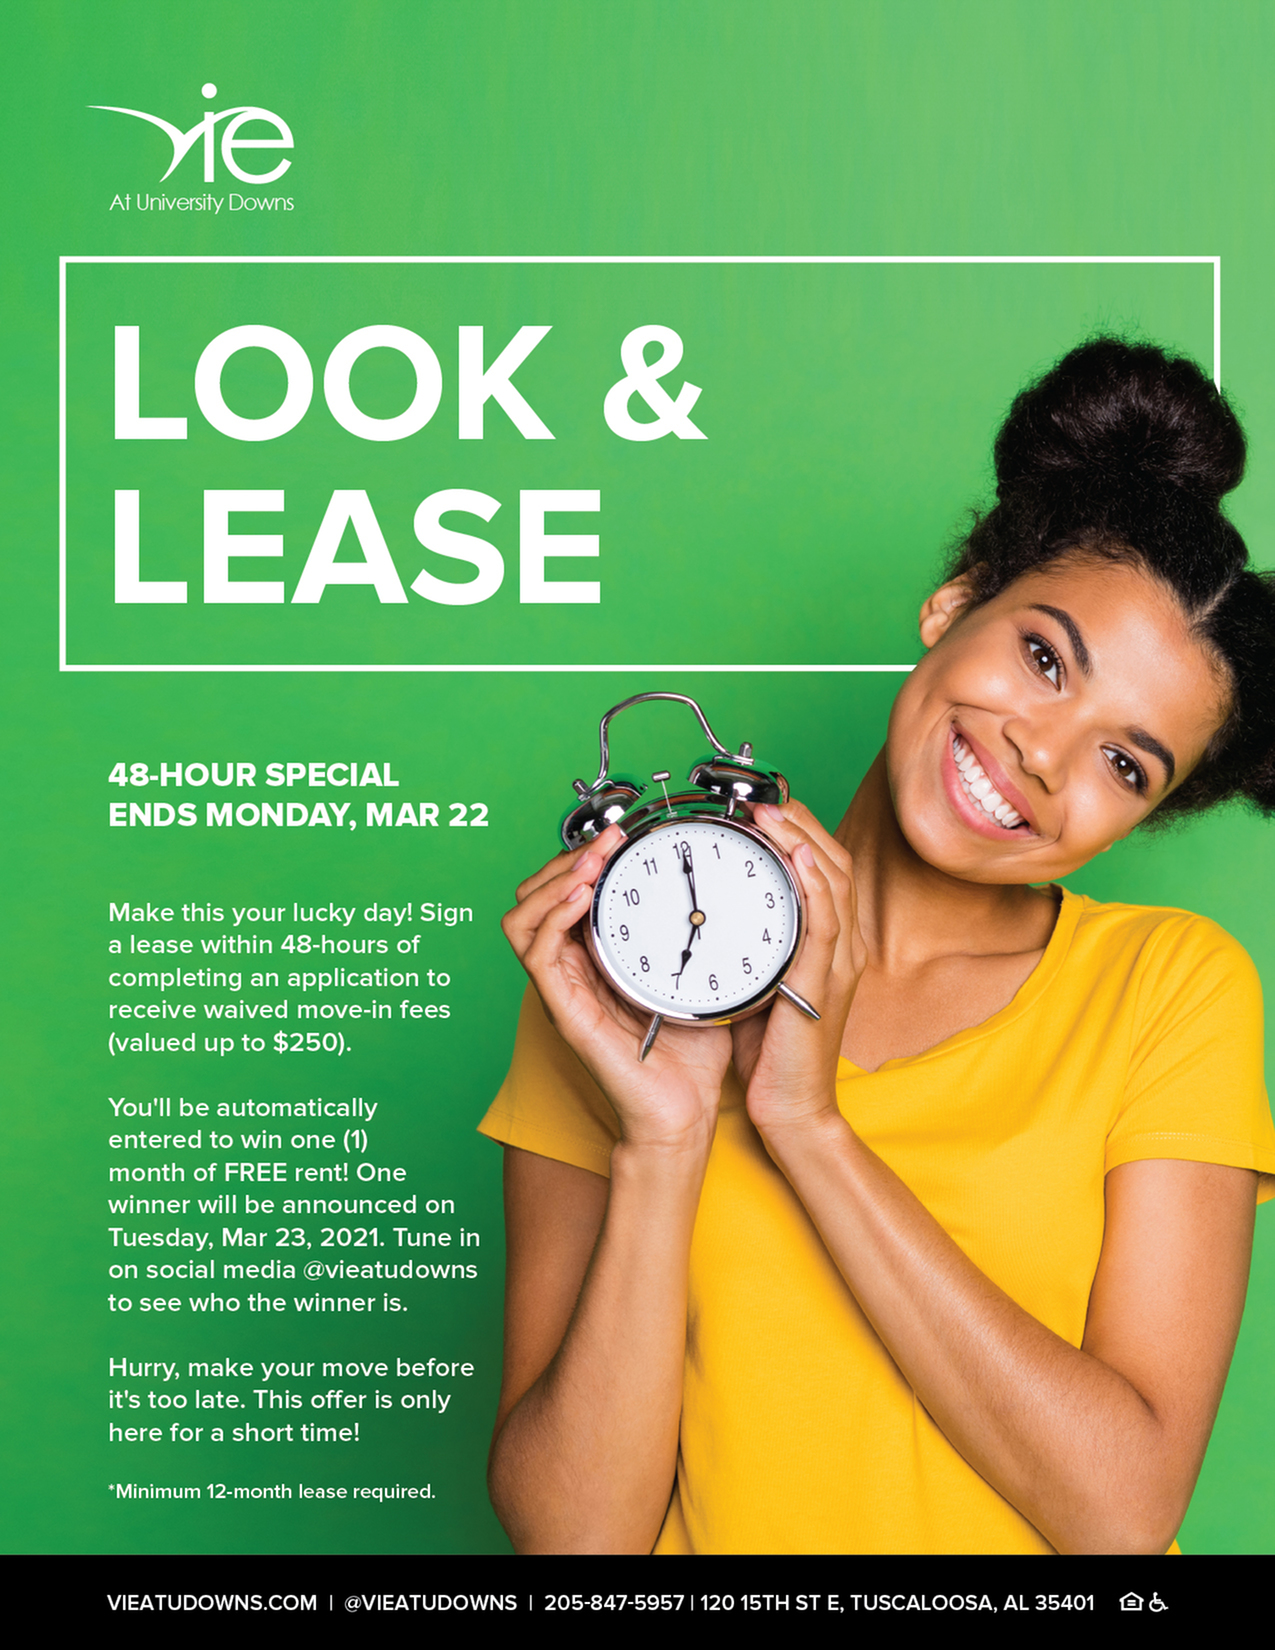 NOW LEASING! 48-HOUR LOOK & LEASE SPECIAL-image